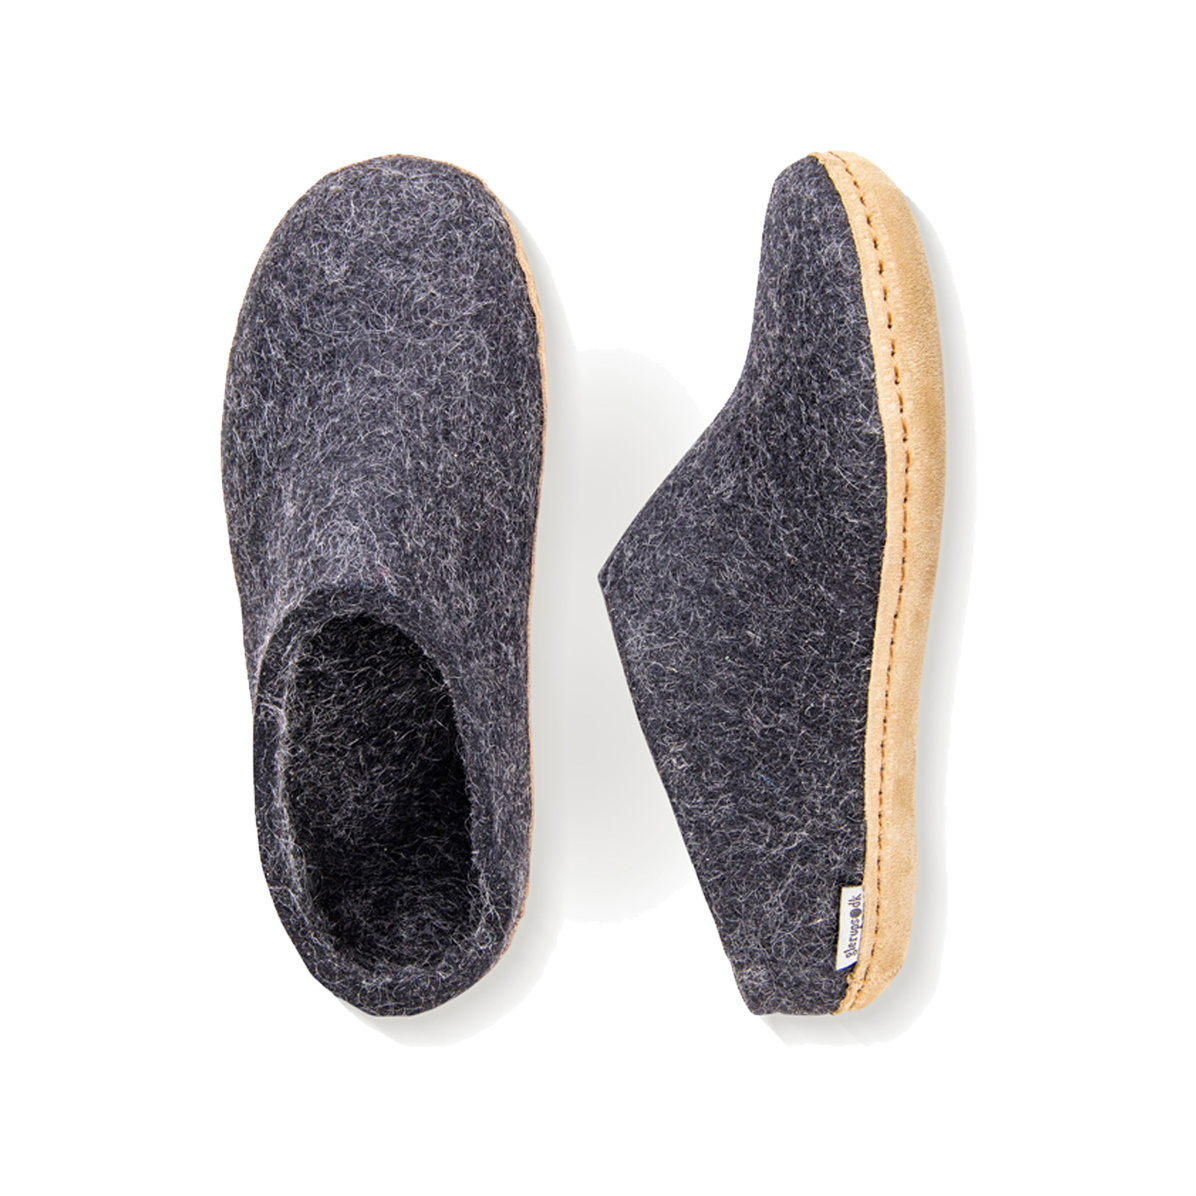 Glerups Glerups Men's Slipper Leather Sole Charcoal